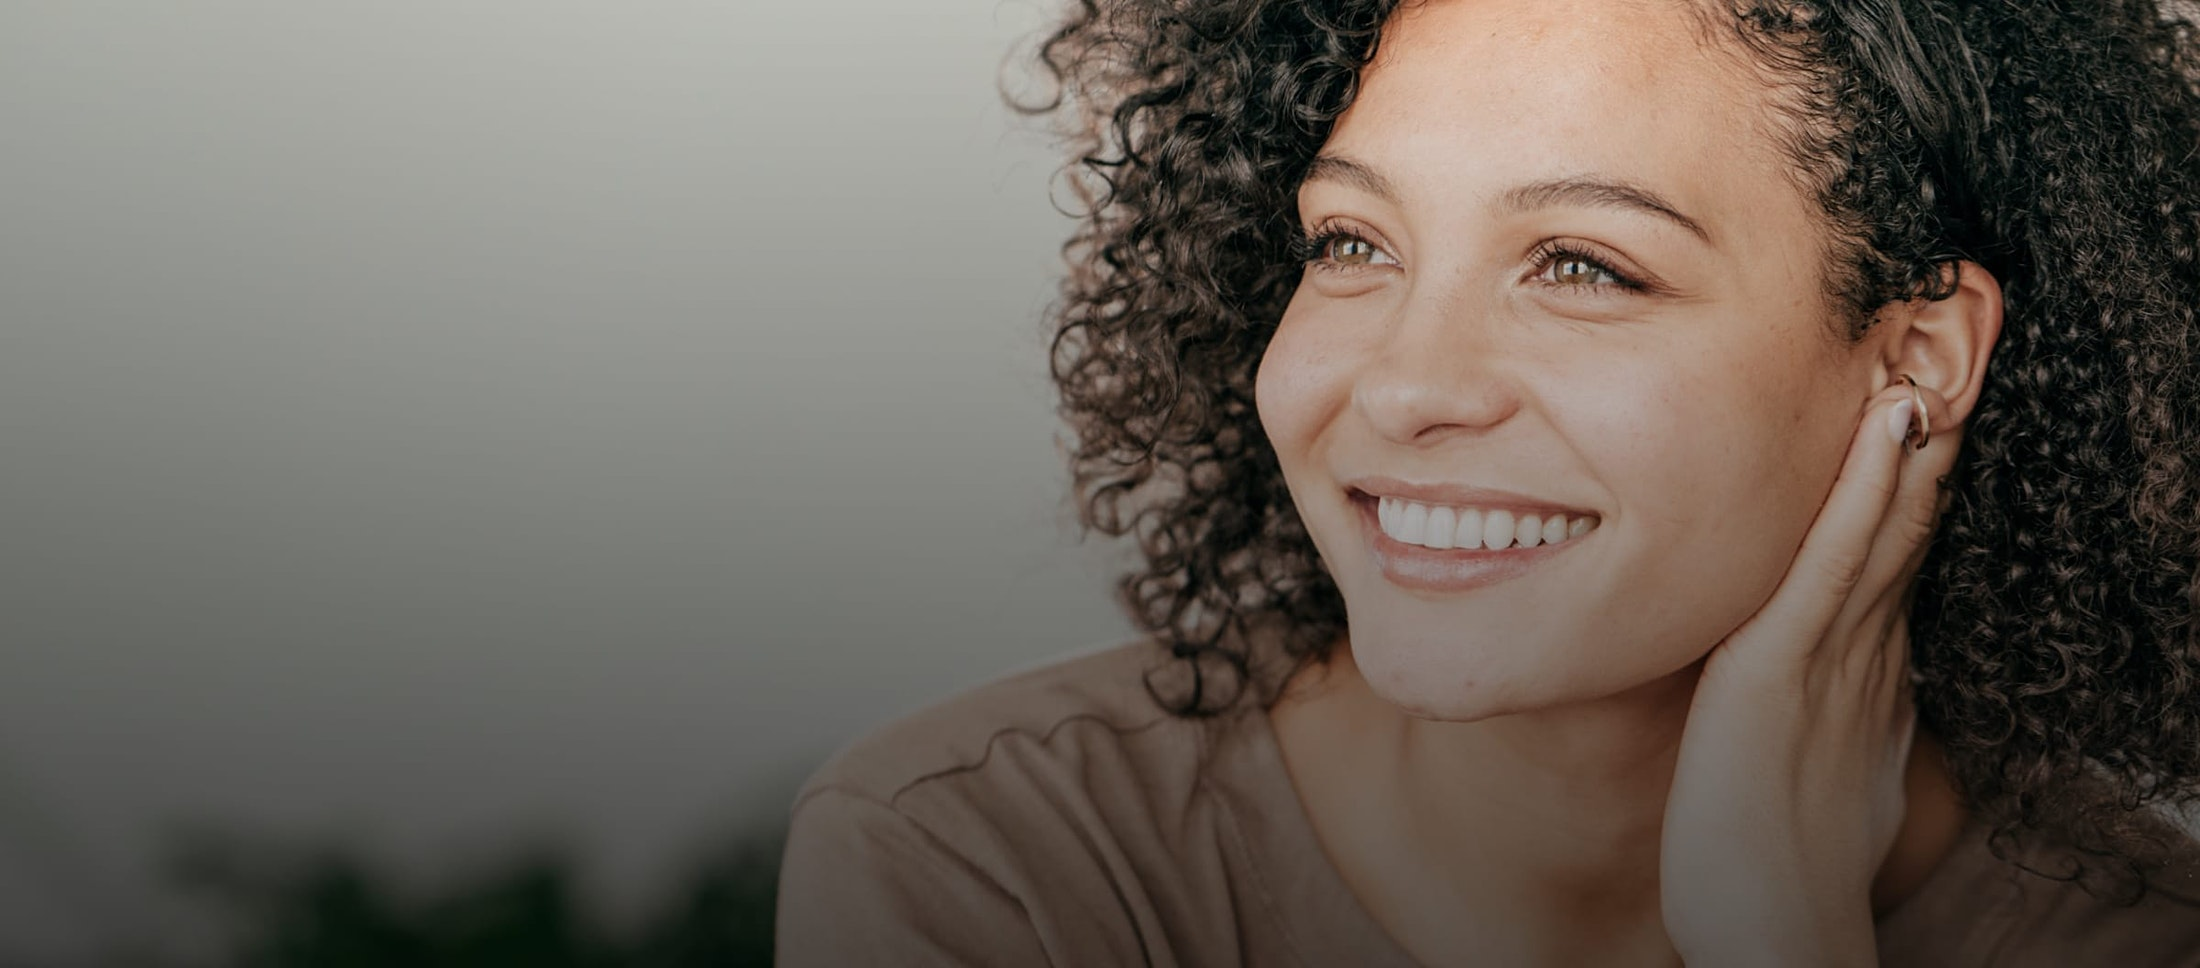 Woman with curly hair smiling, looking to the side